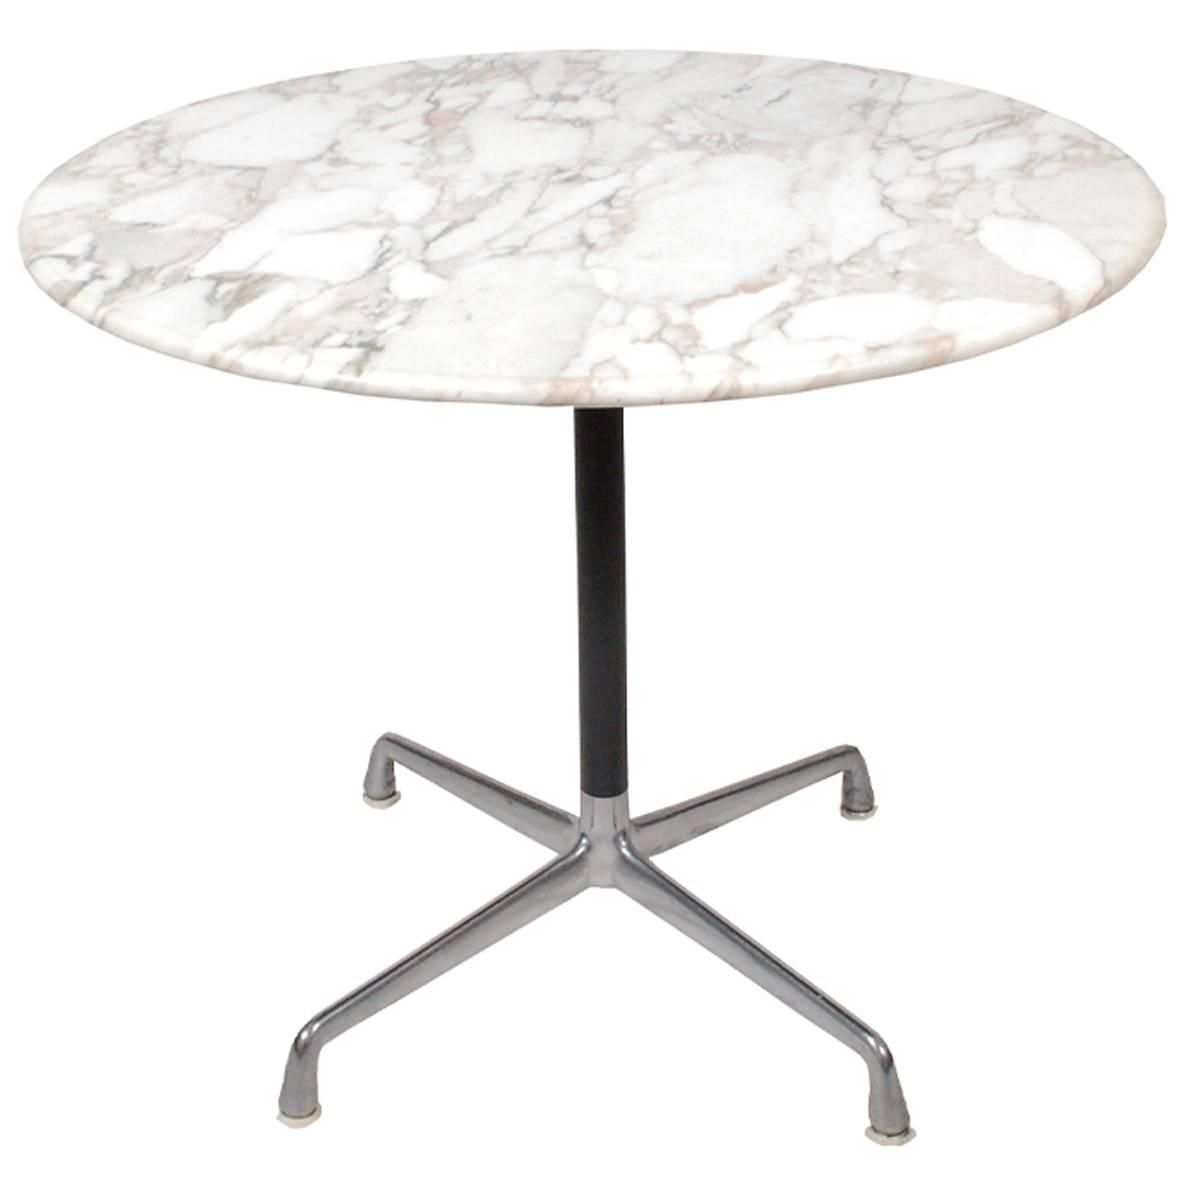 Charles Eames Aluminium Group Dining Table 1958 Dining Table